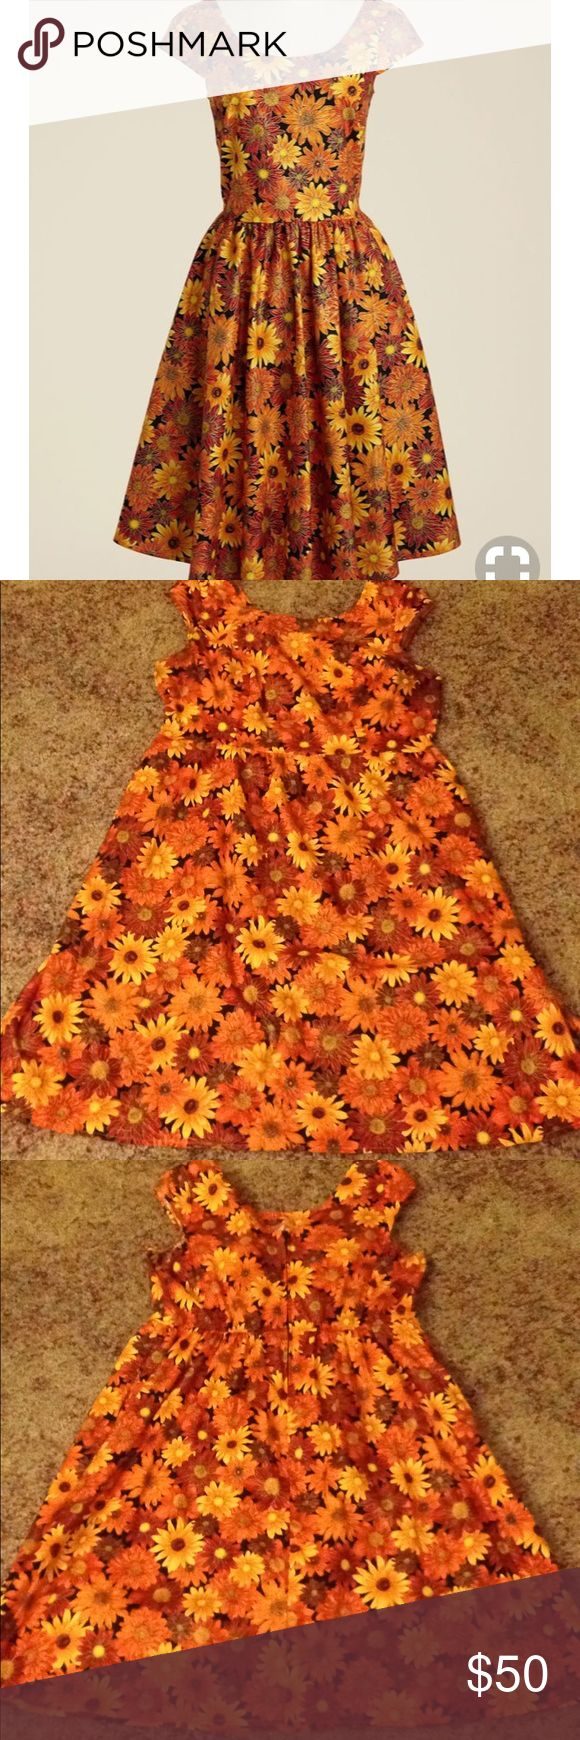 """Size 1x Floral Dress EUC-only worn a handful of times. Has pockets. Brand: Retrolicious. Was sold on ModCloth as """" Autumn Leaf Festival Dress"""" Modcloth Dresses"""